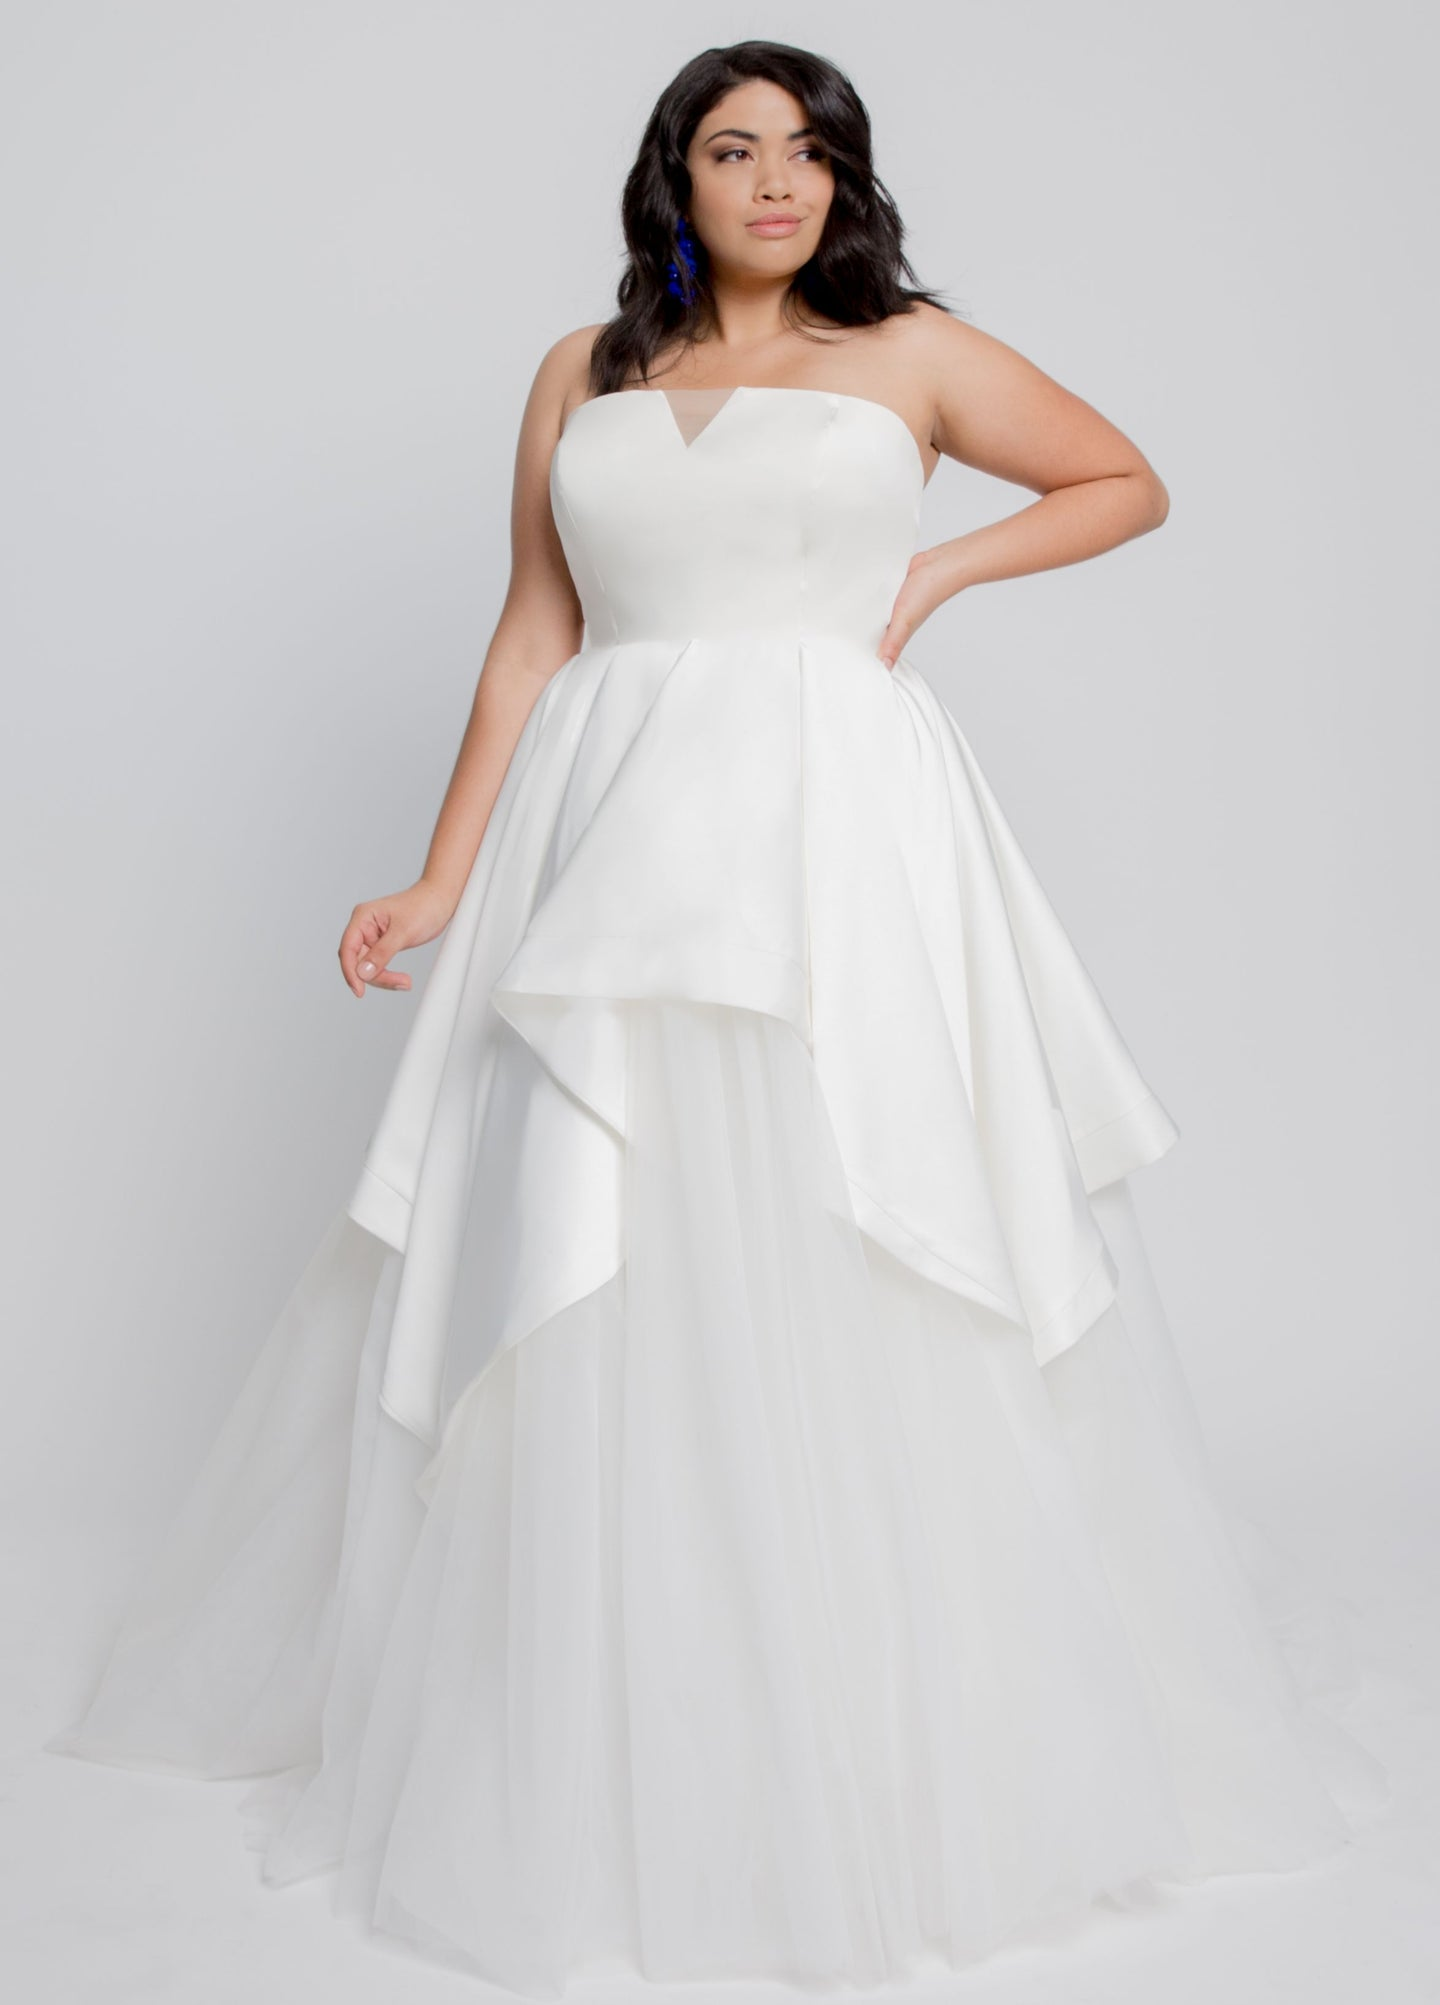 Gorgeous bridal gowns for all body shapes: plus size, curvy, or petite brides. Try on our wedding dresses at home. Size 0-30. Comfortable. Convenient. Fun. Lace or satin. Mermaid or A-line.  The Knightly Dress features an elegant A line satin dress with light and airy ball gown. The satin strapless bustier features a flattering tulle V panel. The assymetric detail in front adds a modern twist to a classic style creating clean and elegant lines. Tulle layers create an illusion as if walking on a cloud.